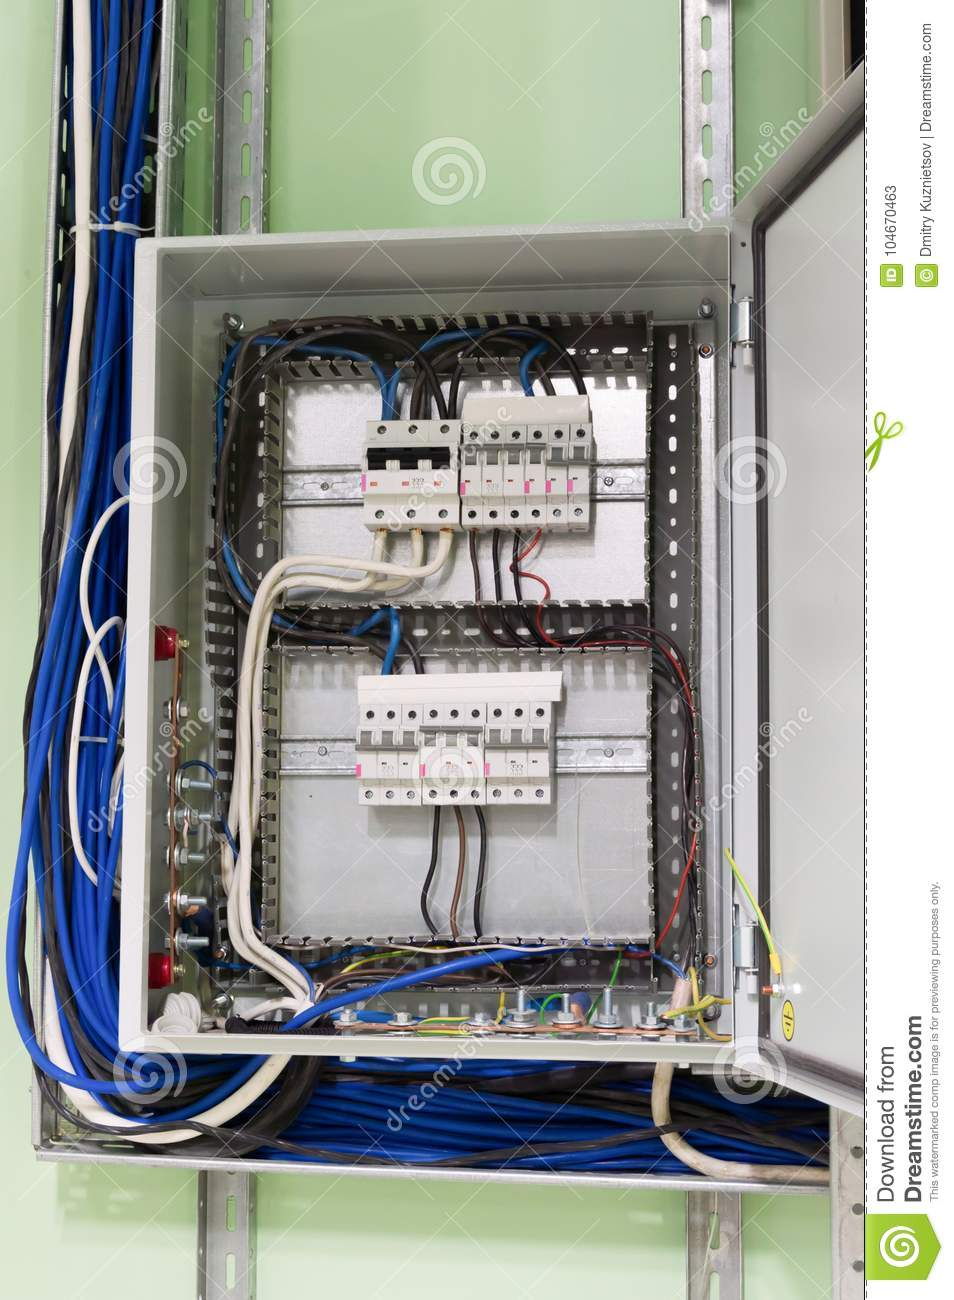 hight resolution of electric box with wires and mcb x28 micro circuit braker x29 in the